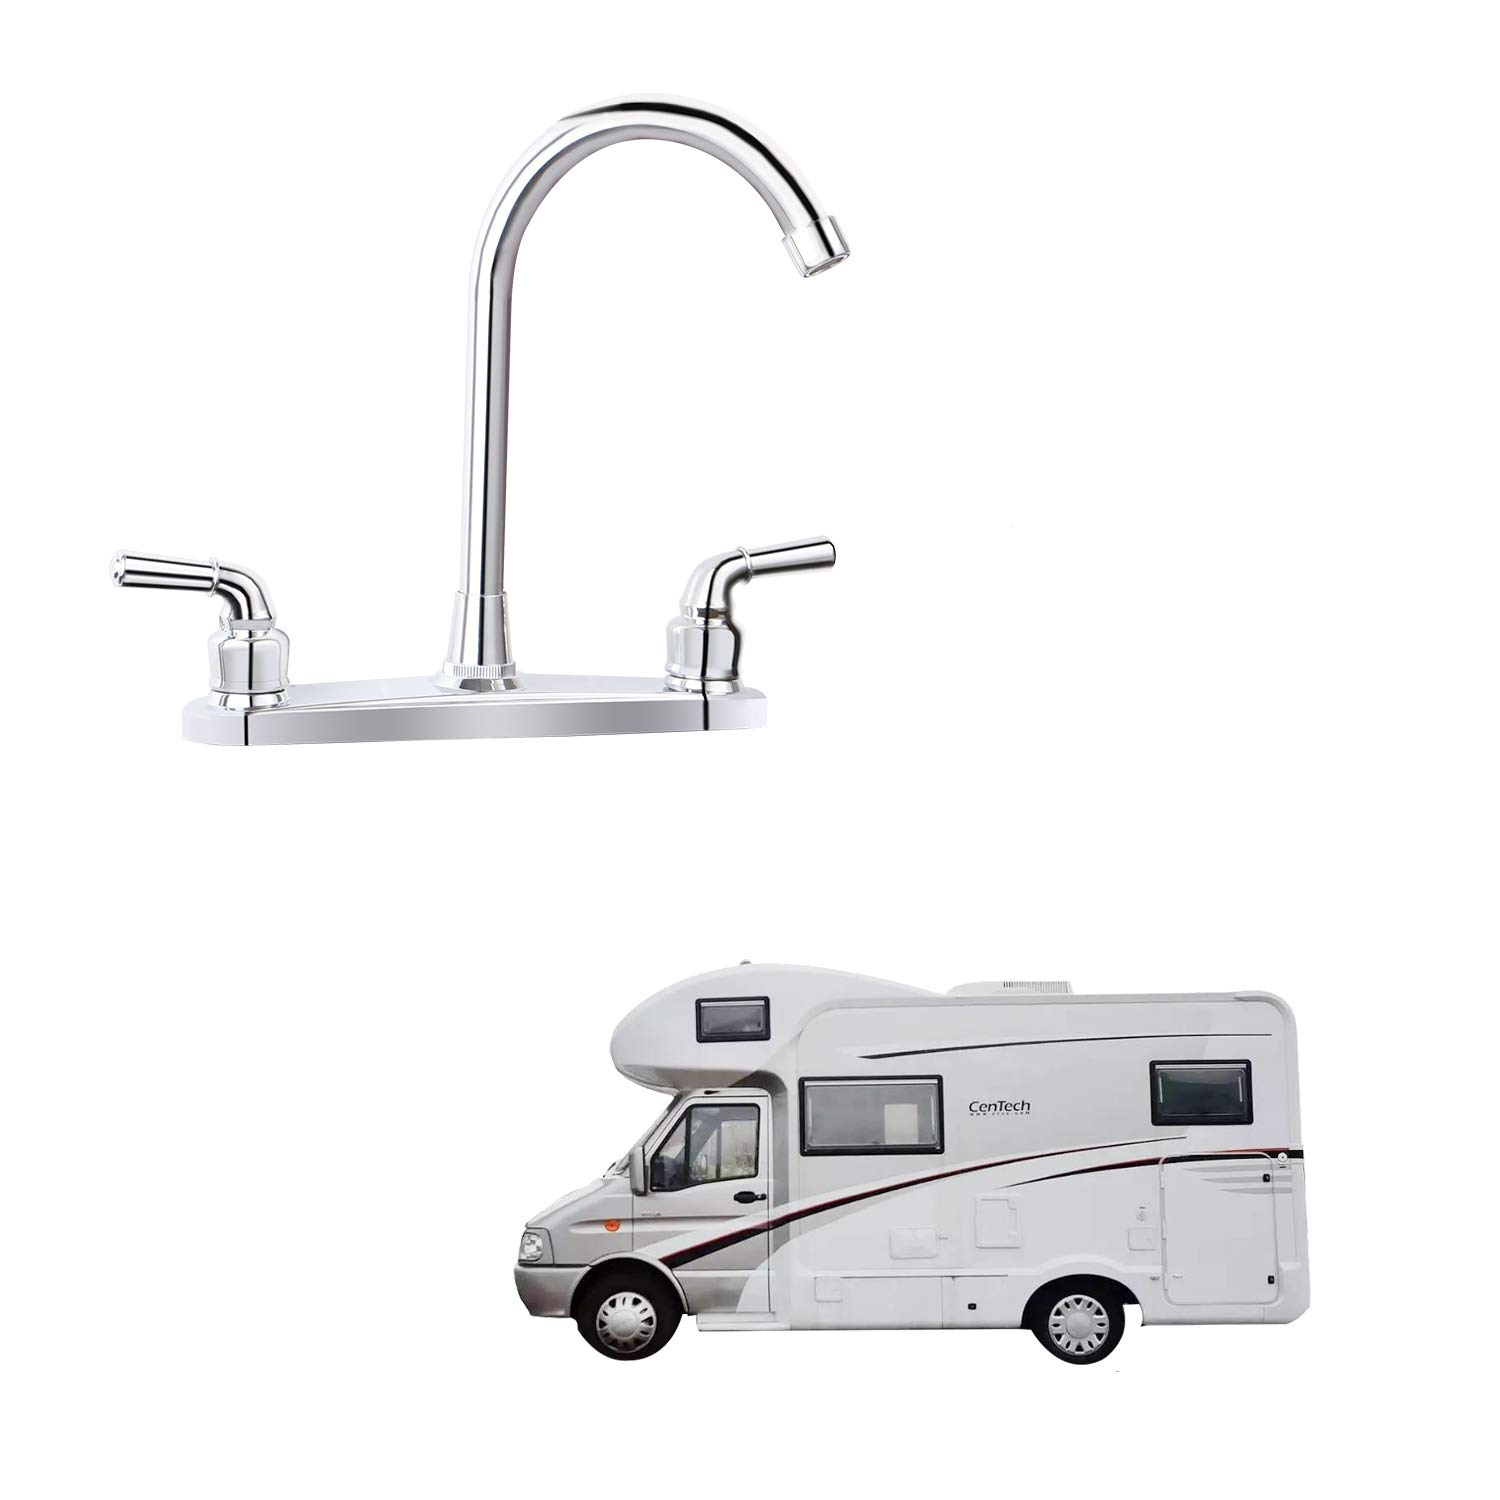 RV Non-metallic Kitchen Faucet Two Handle-8'' Main Body-High Arch-360 Swivel Replace For Motorhomes, Travel Trailers,Campers (8''HIGH ARCH) by JAKARDA